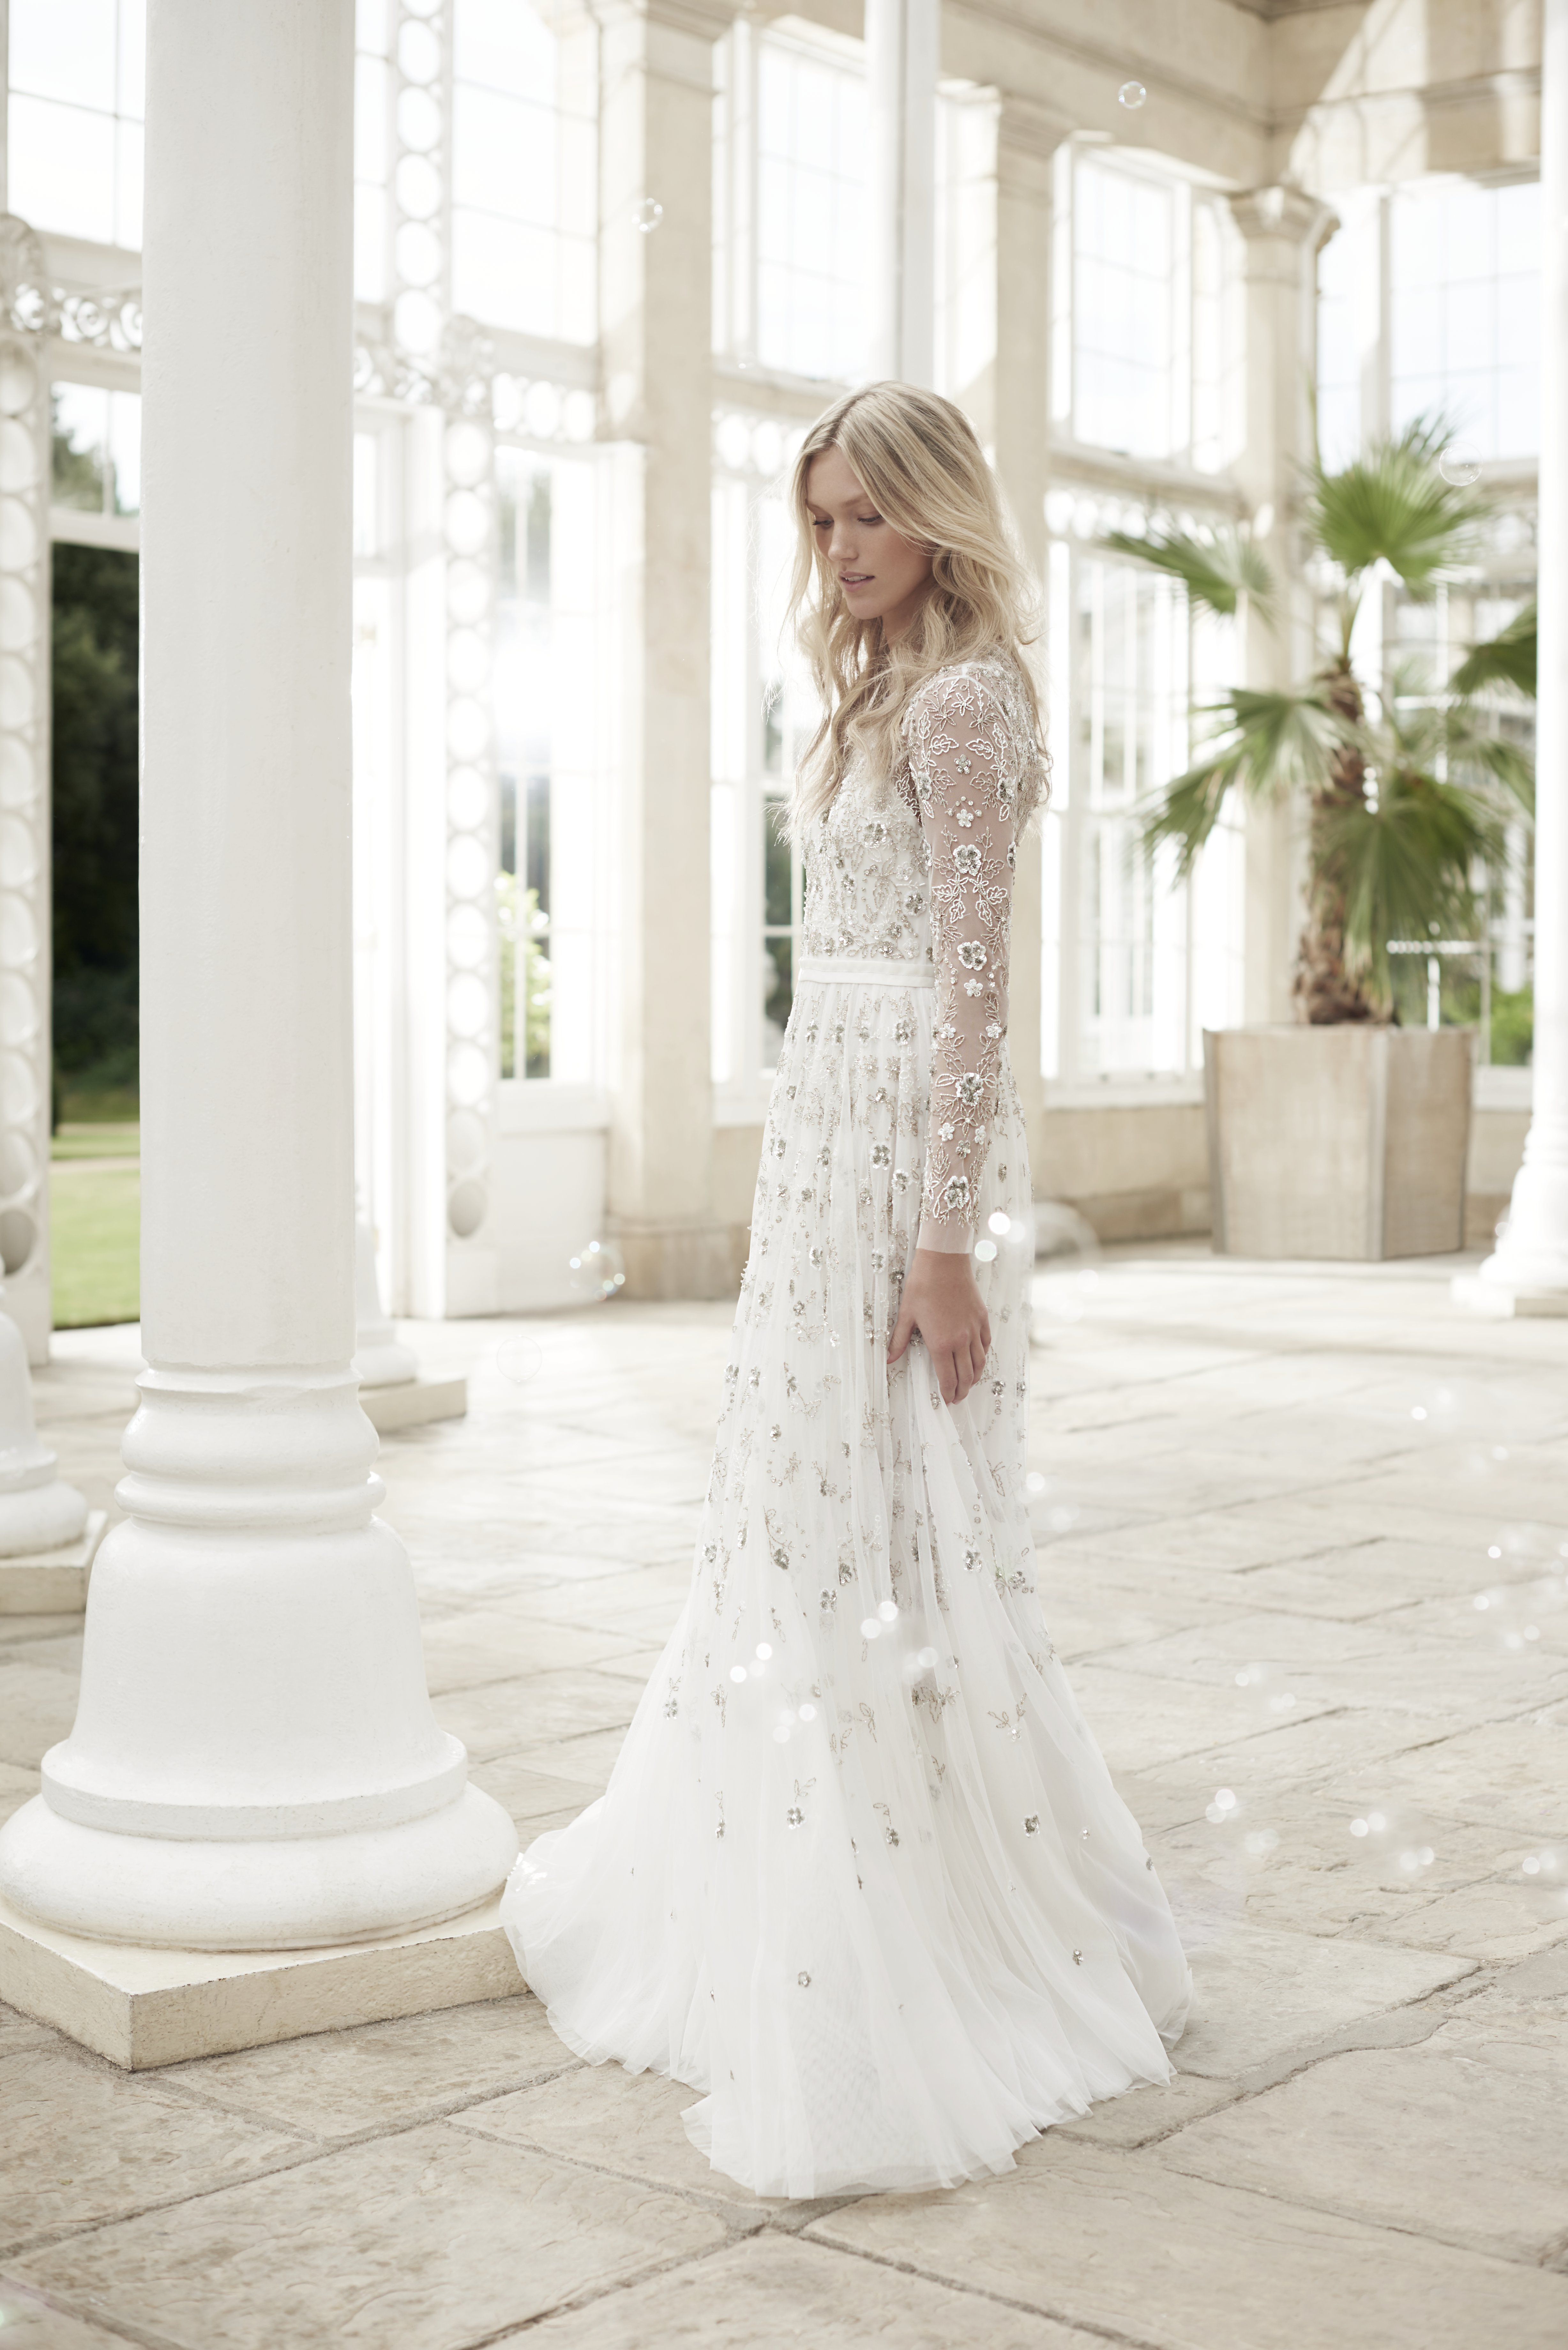 Wedding Dresses, High Street Wedding Dresses, High Street Bridal, Budget Dresses